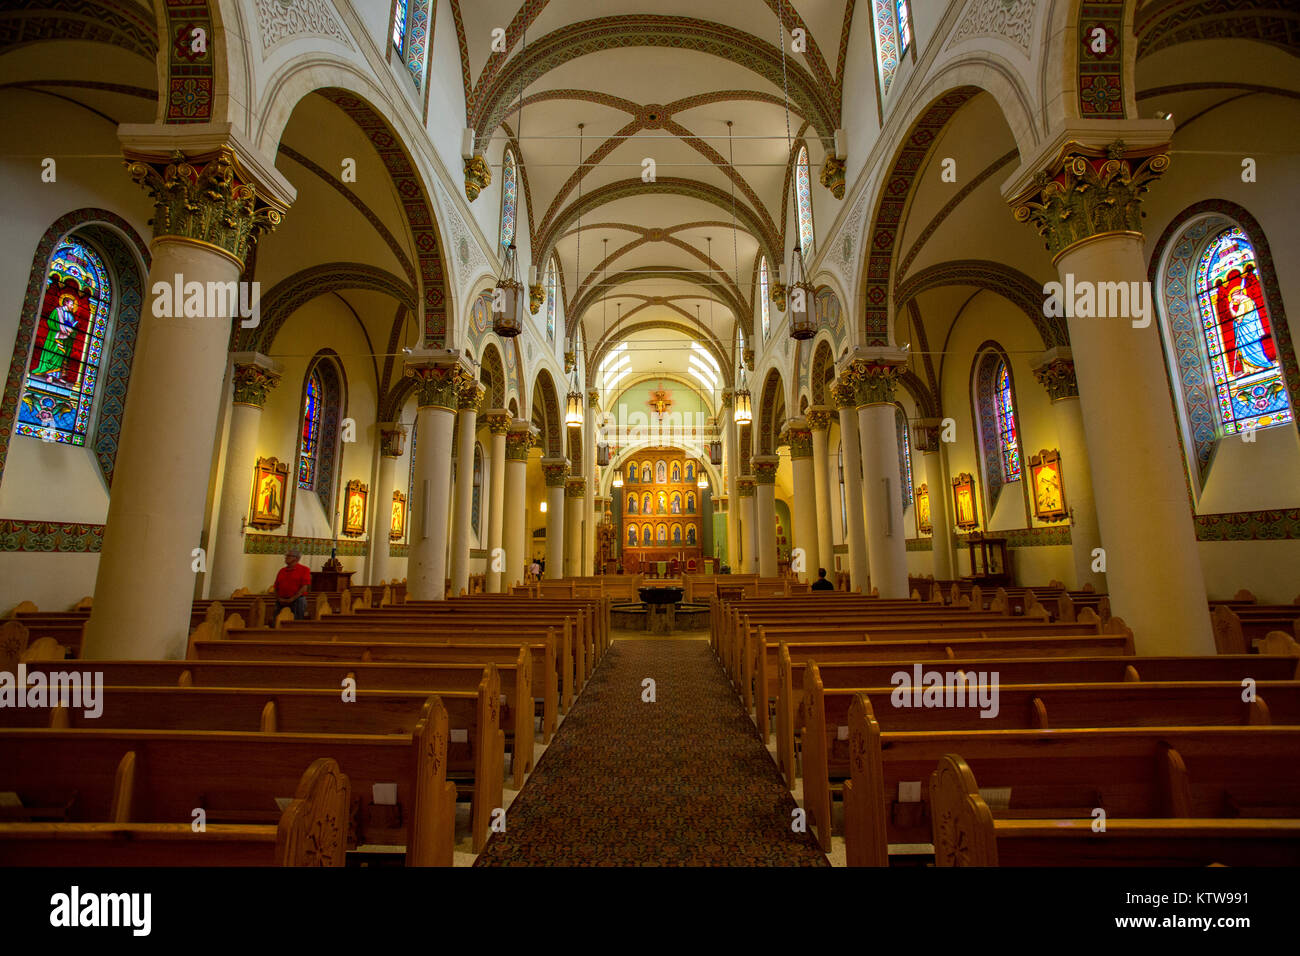 Cathedral Basilica of St. Francis of Assisi, Santa Fe, New Mexico - Stock Image